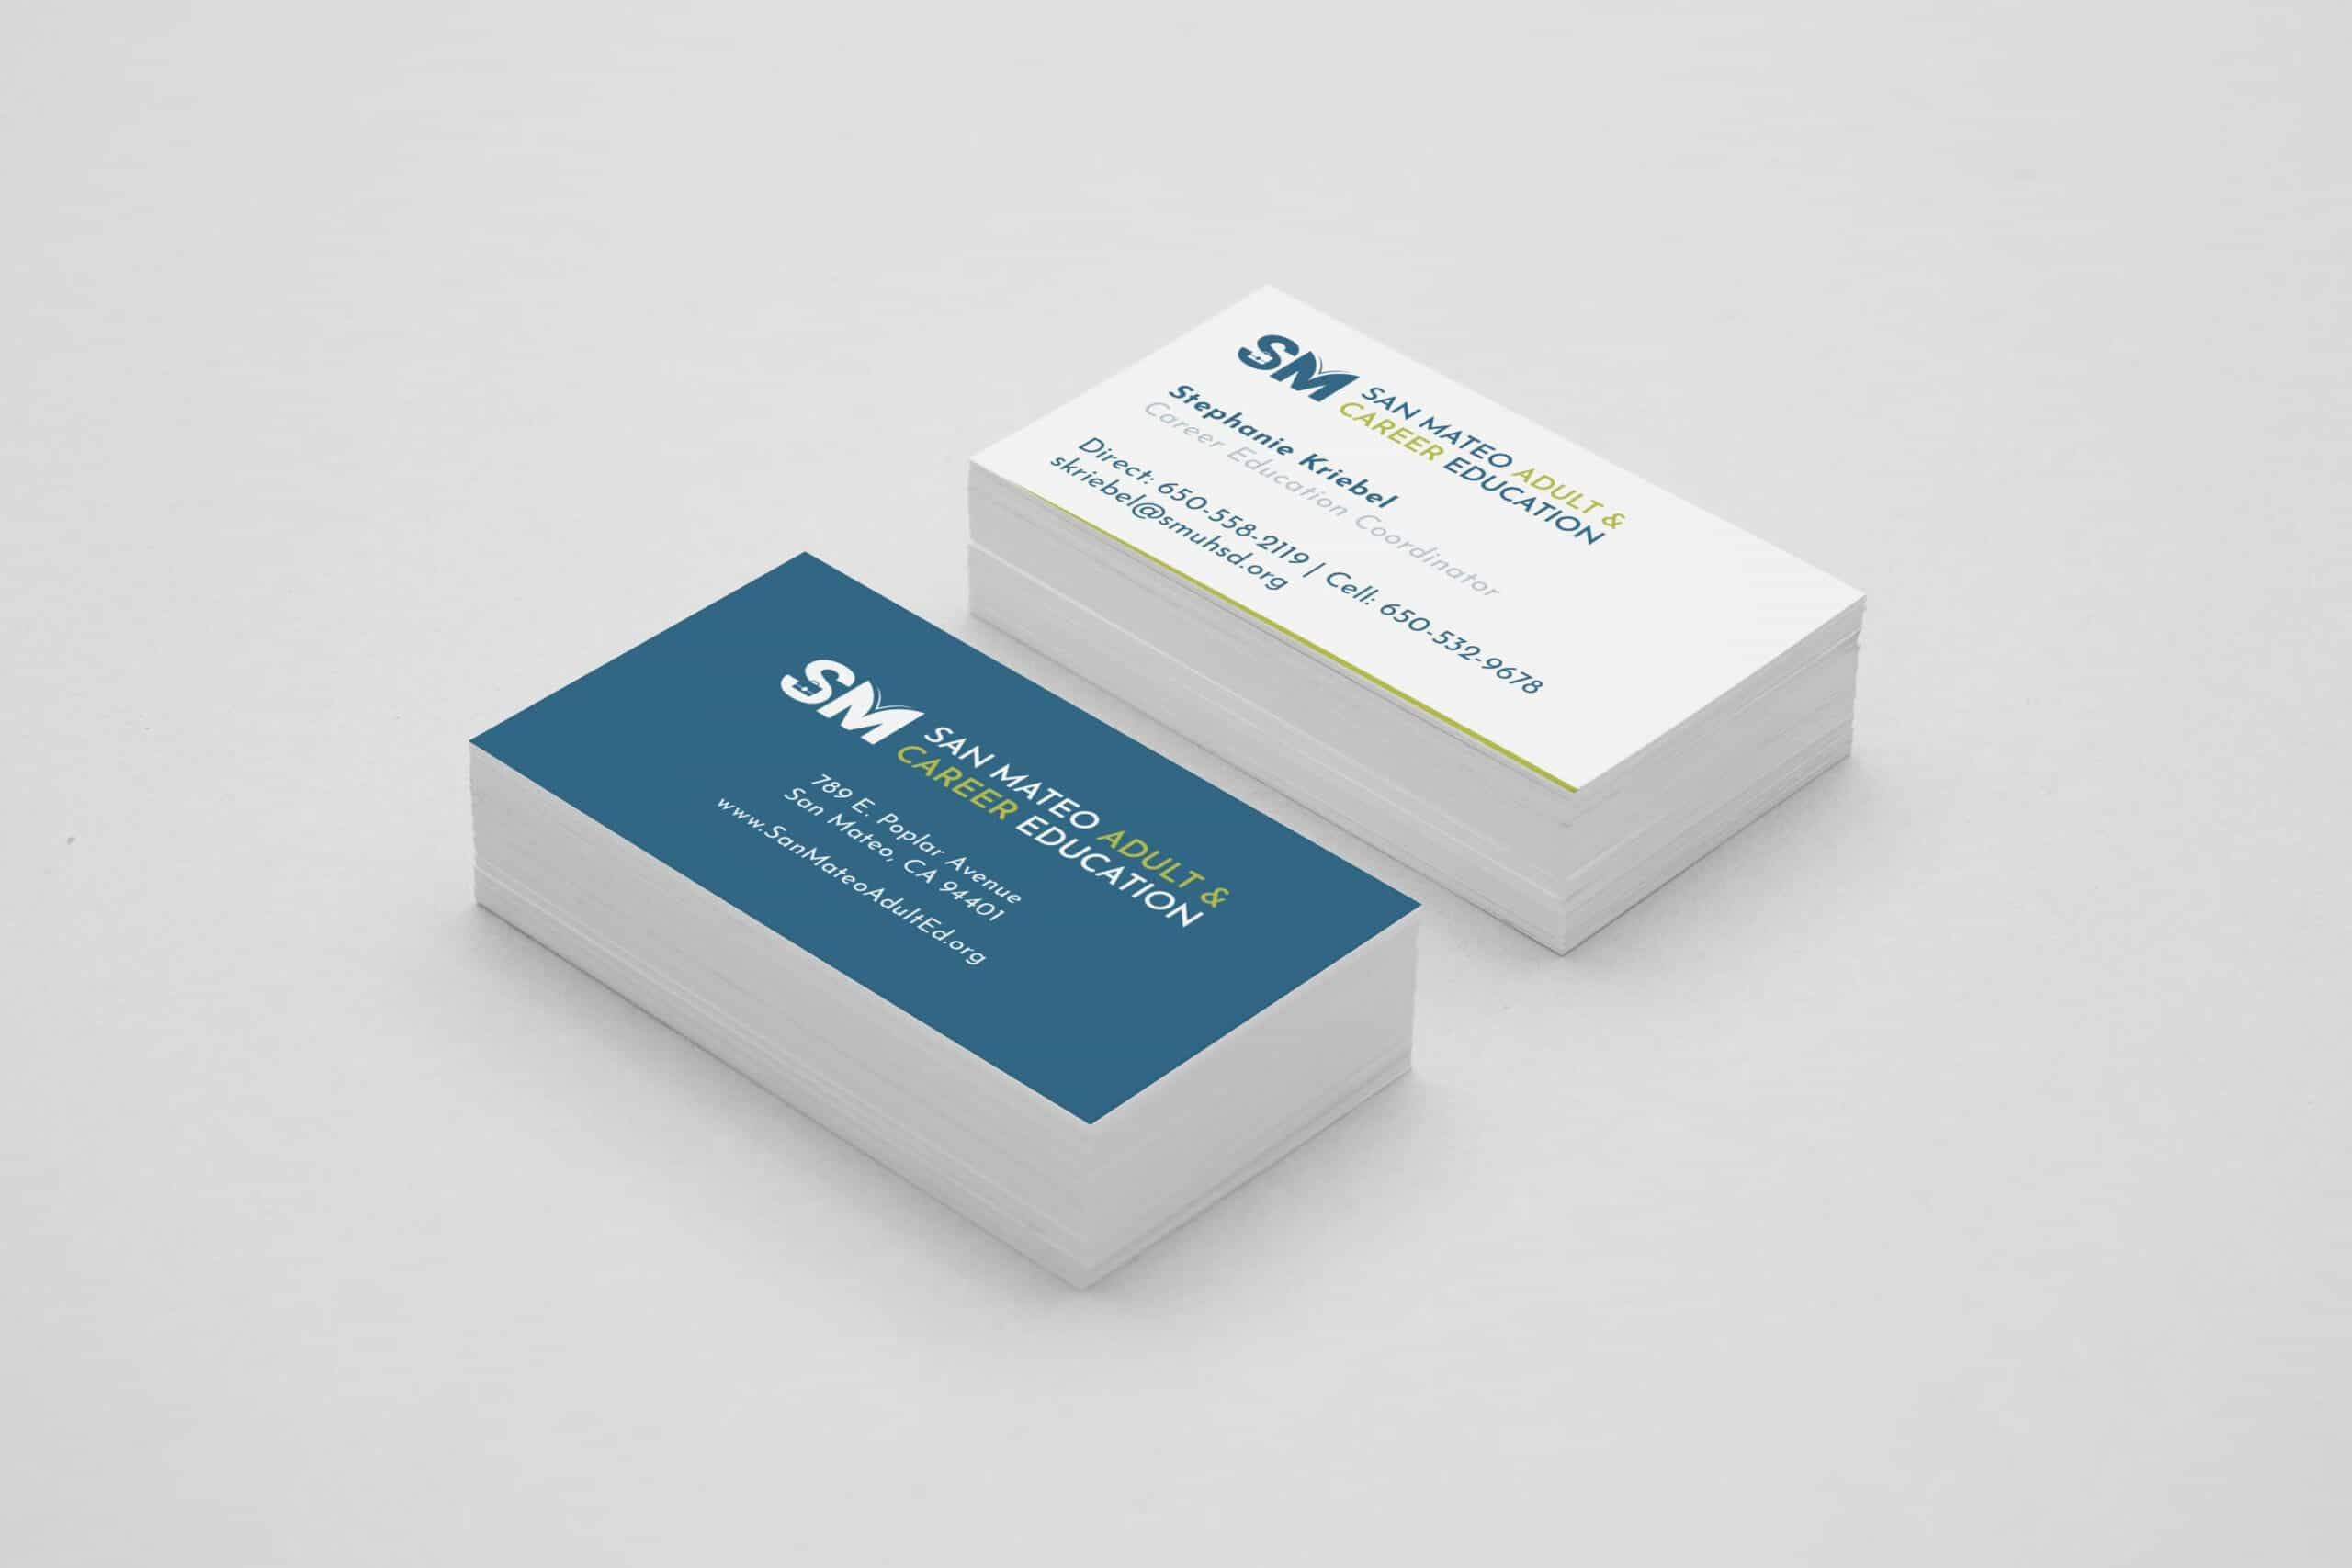 San Mateo Adult & Career Education Business Card